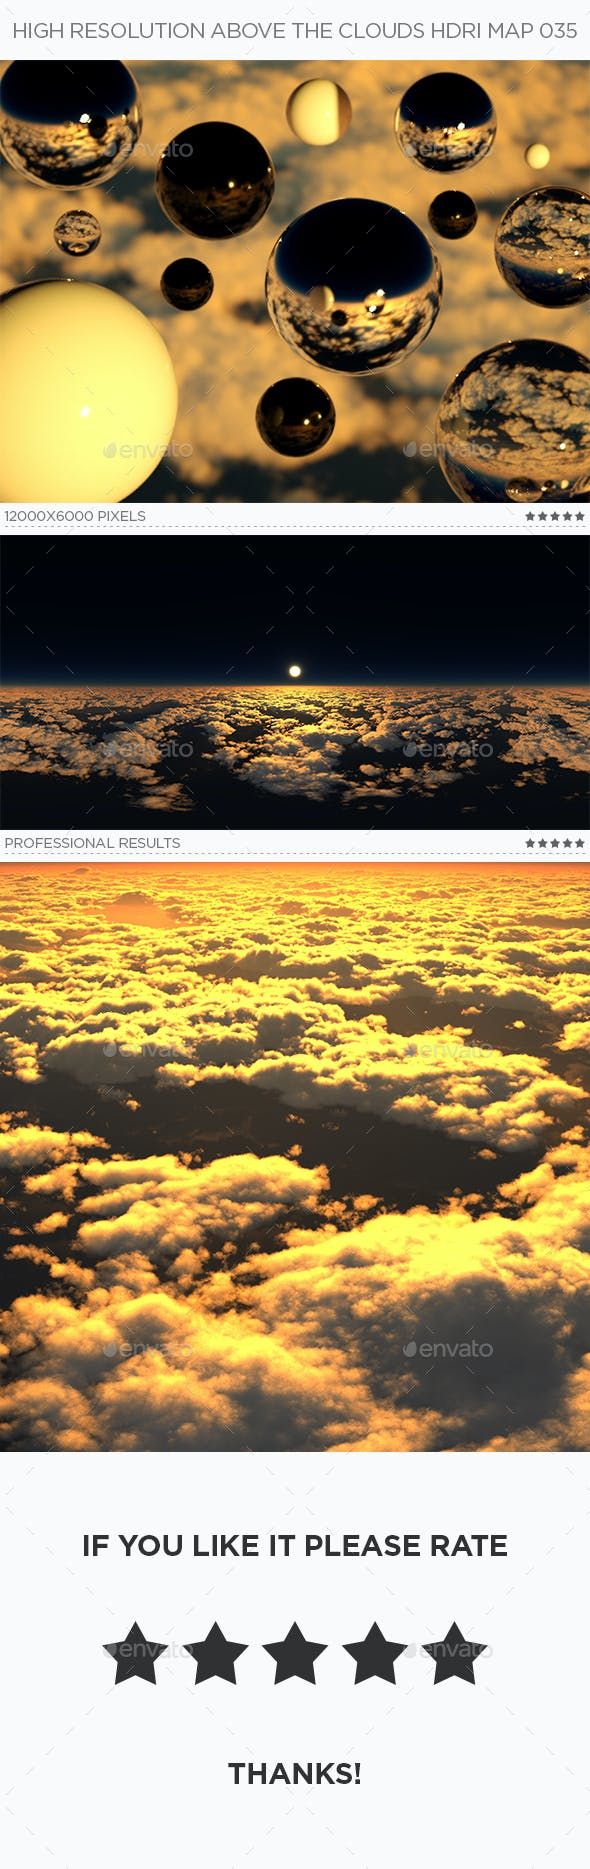 High Resolution Above The Clouds HDRi Map 035 - 3DOcean Item for Sale